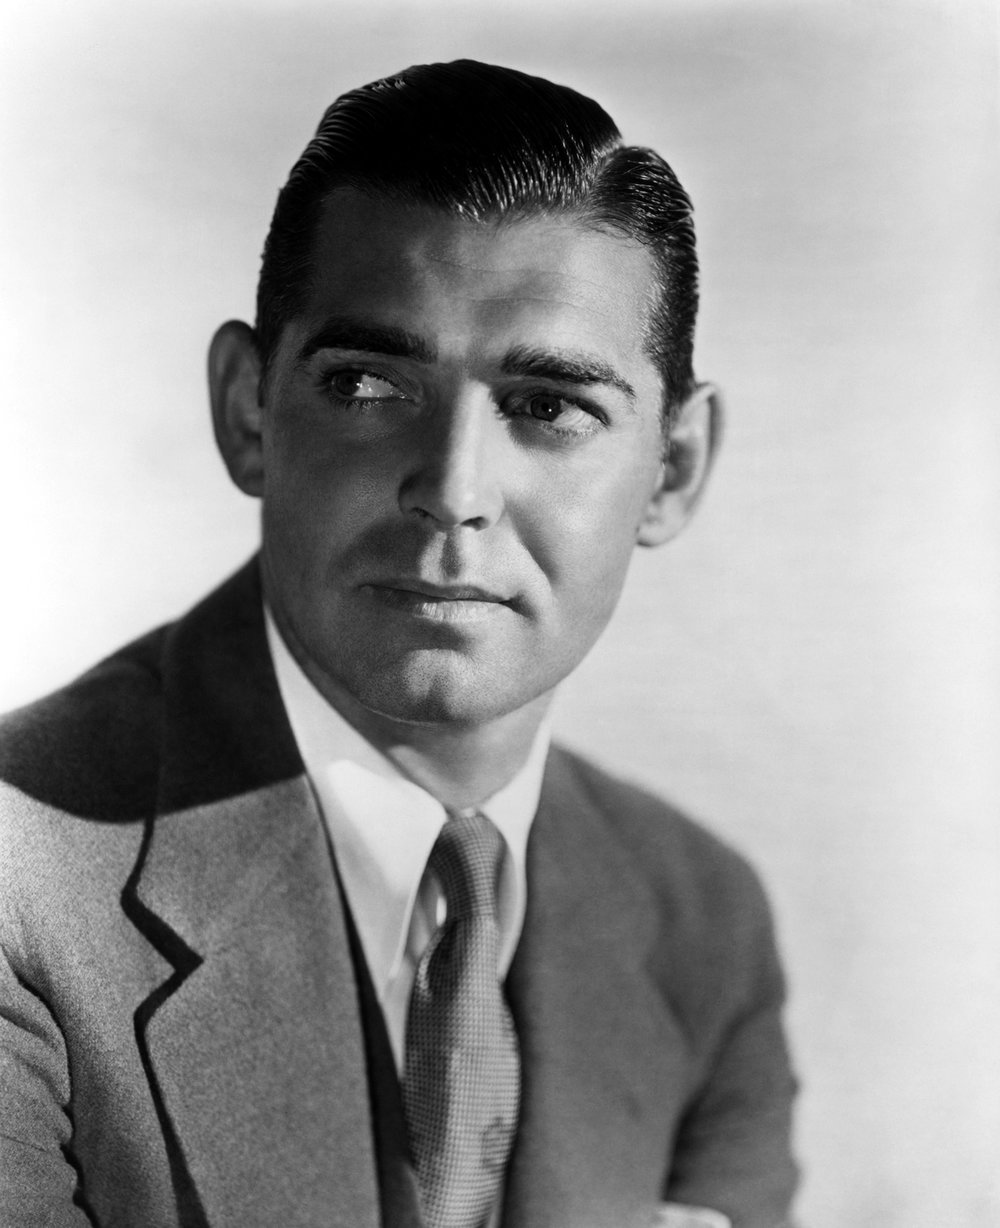 Clark Gable - Her co-star in Mogambo was also one of her favorite actors.